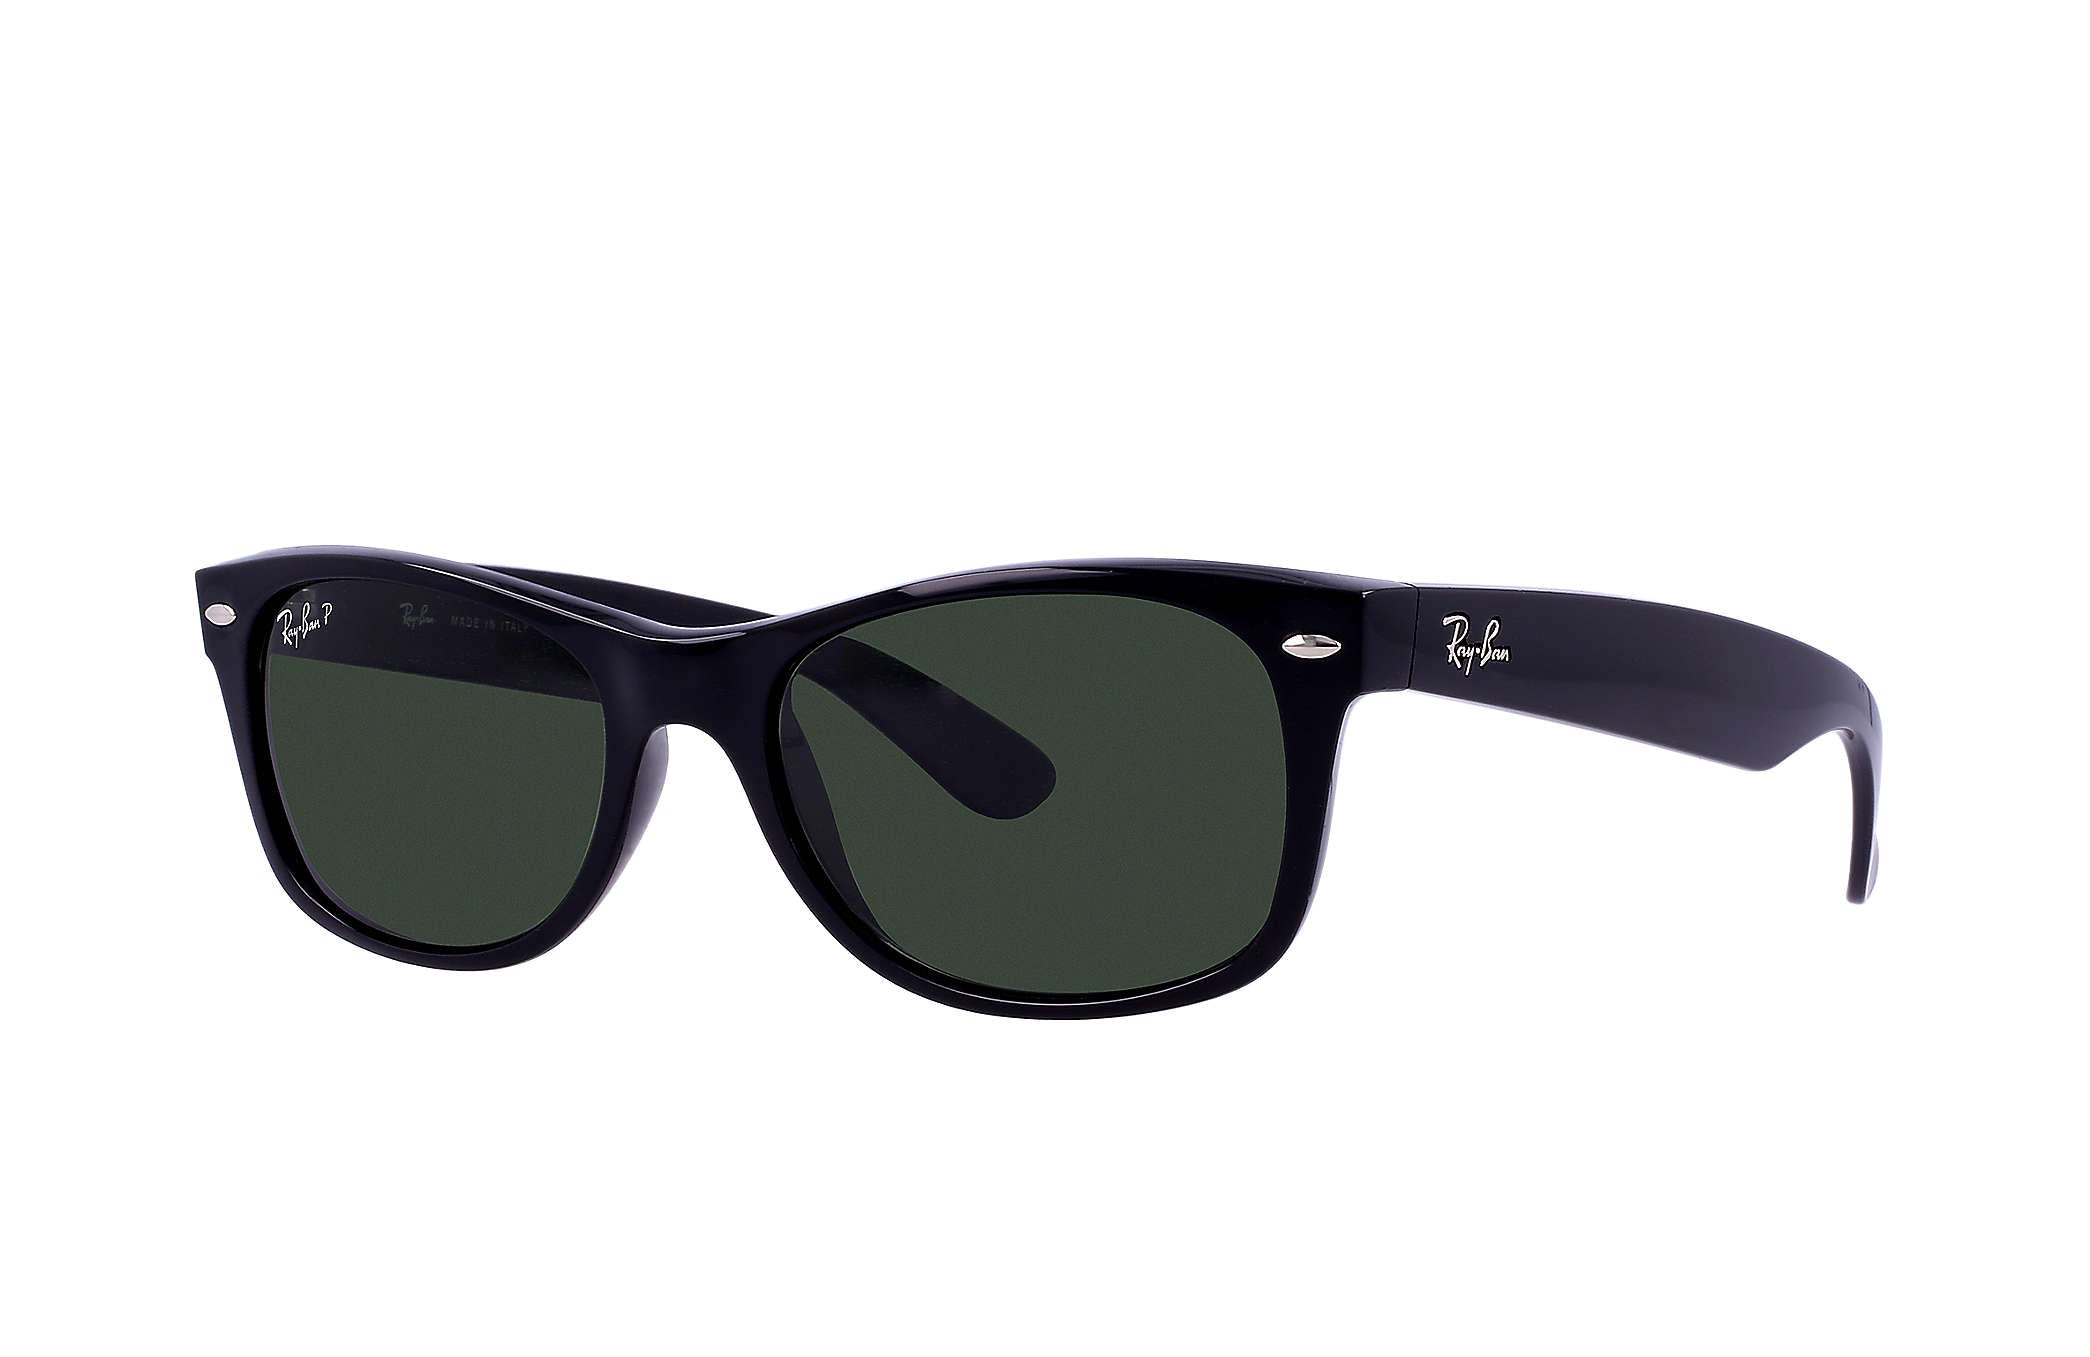 NEW WAYFARER SUNGLASSES BLACK / GREEN CLASSIC POLARIZED